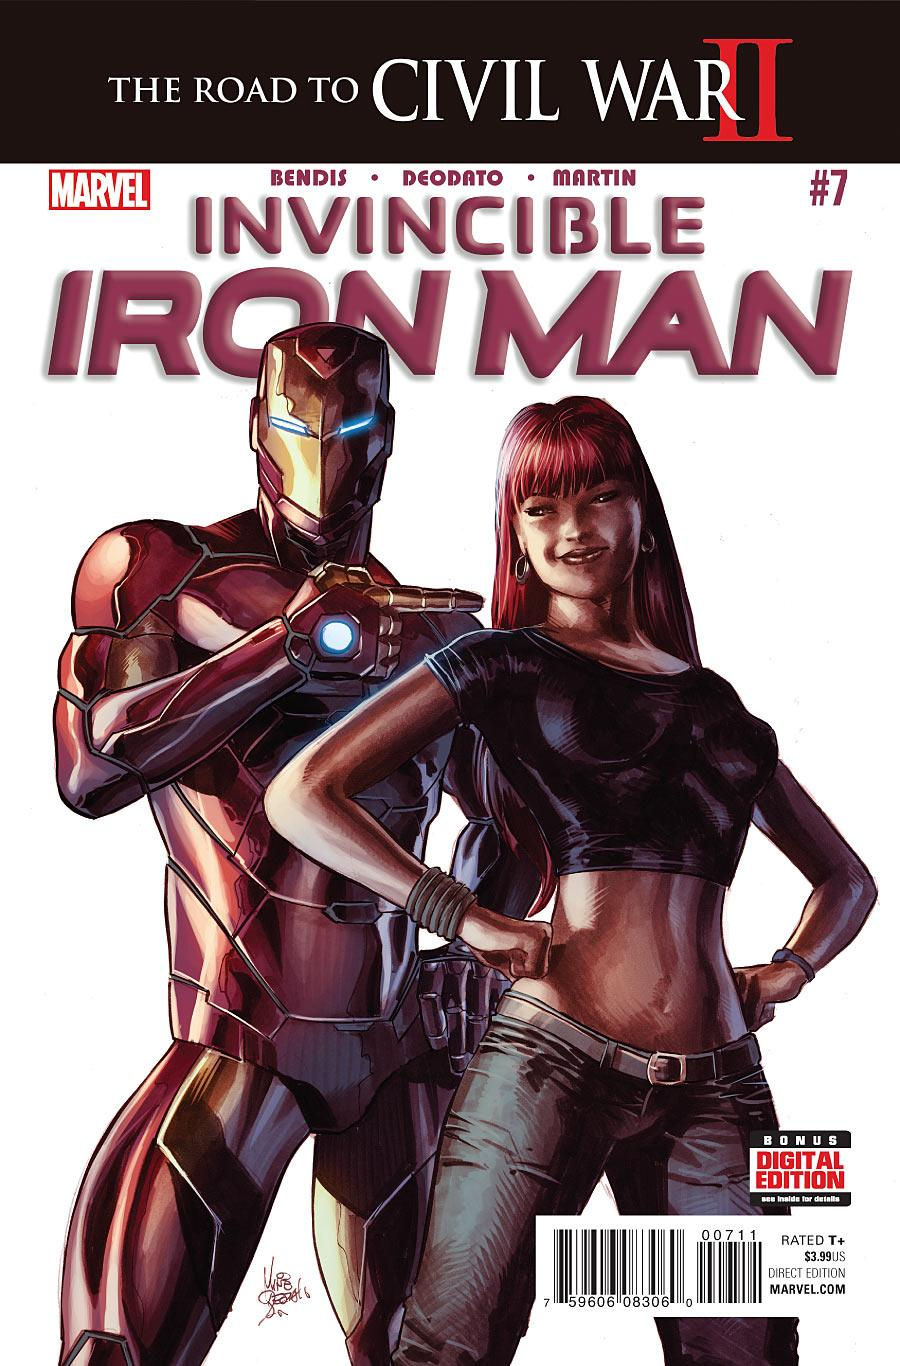 Invincible Iron Man #7 Review